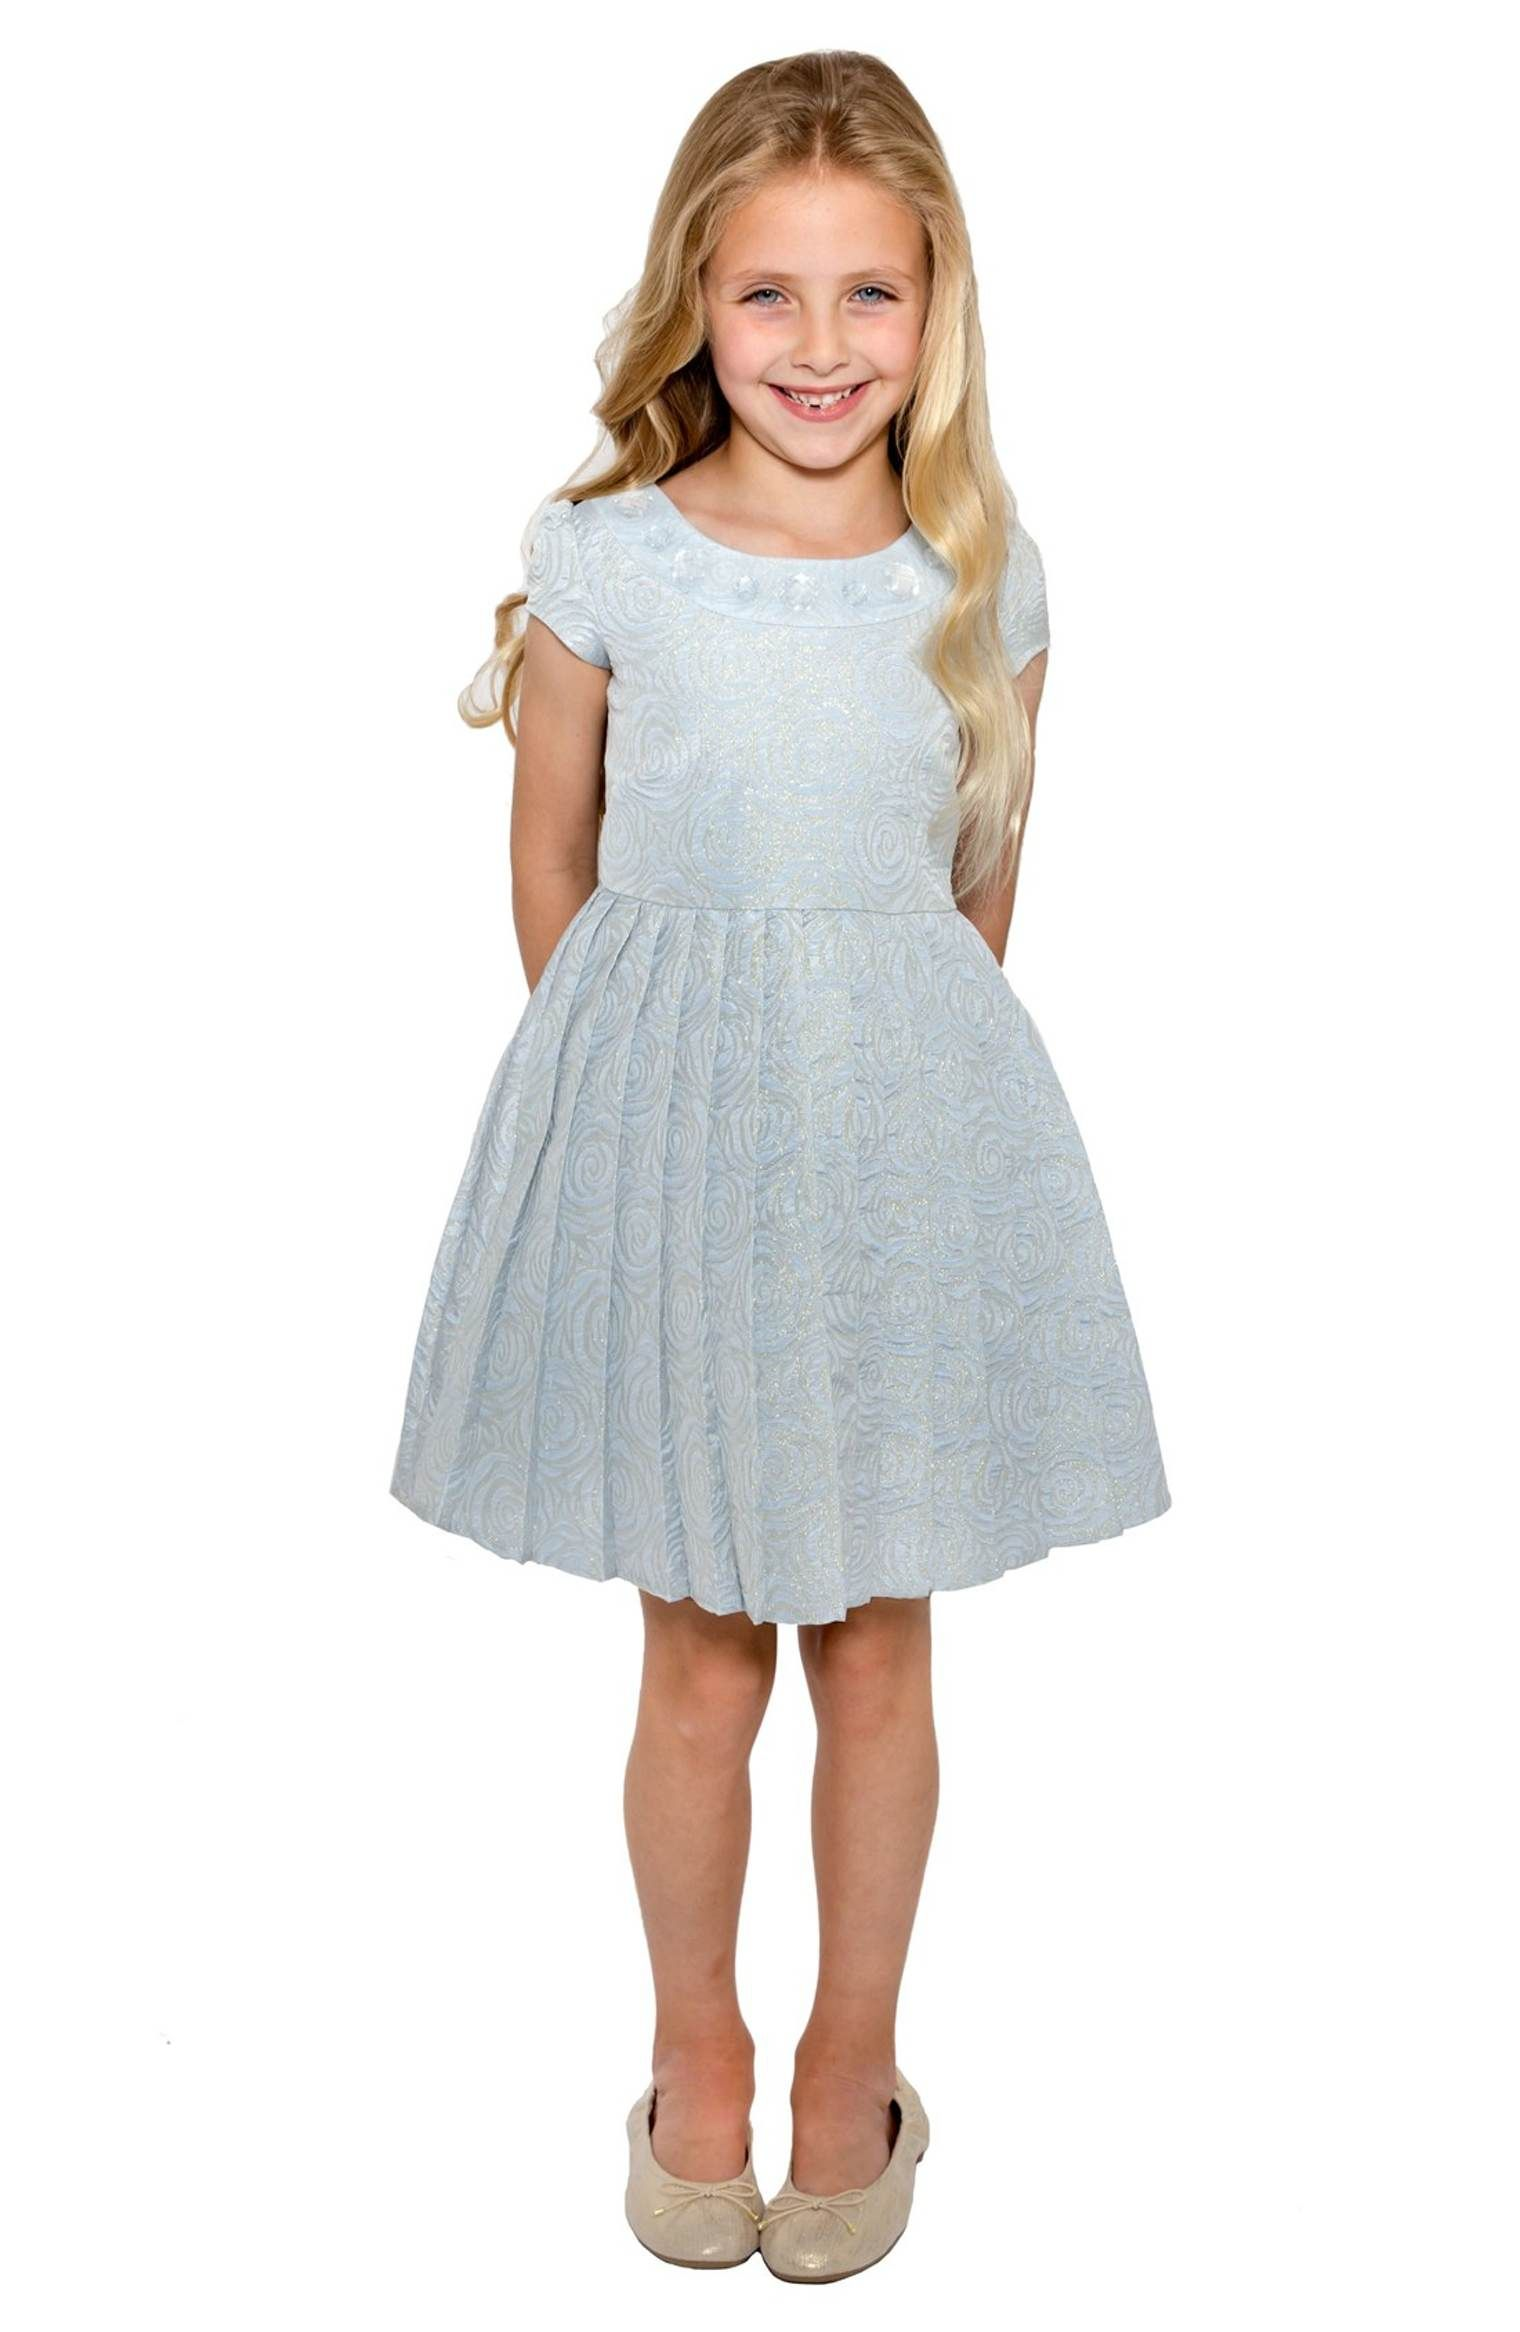 Floral Brocade Dress | Toddlers, Floral and Little girls